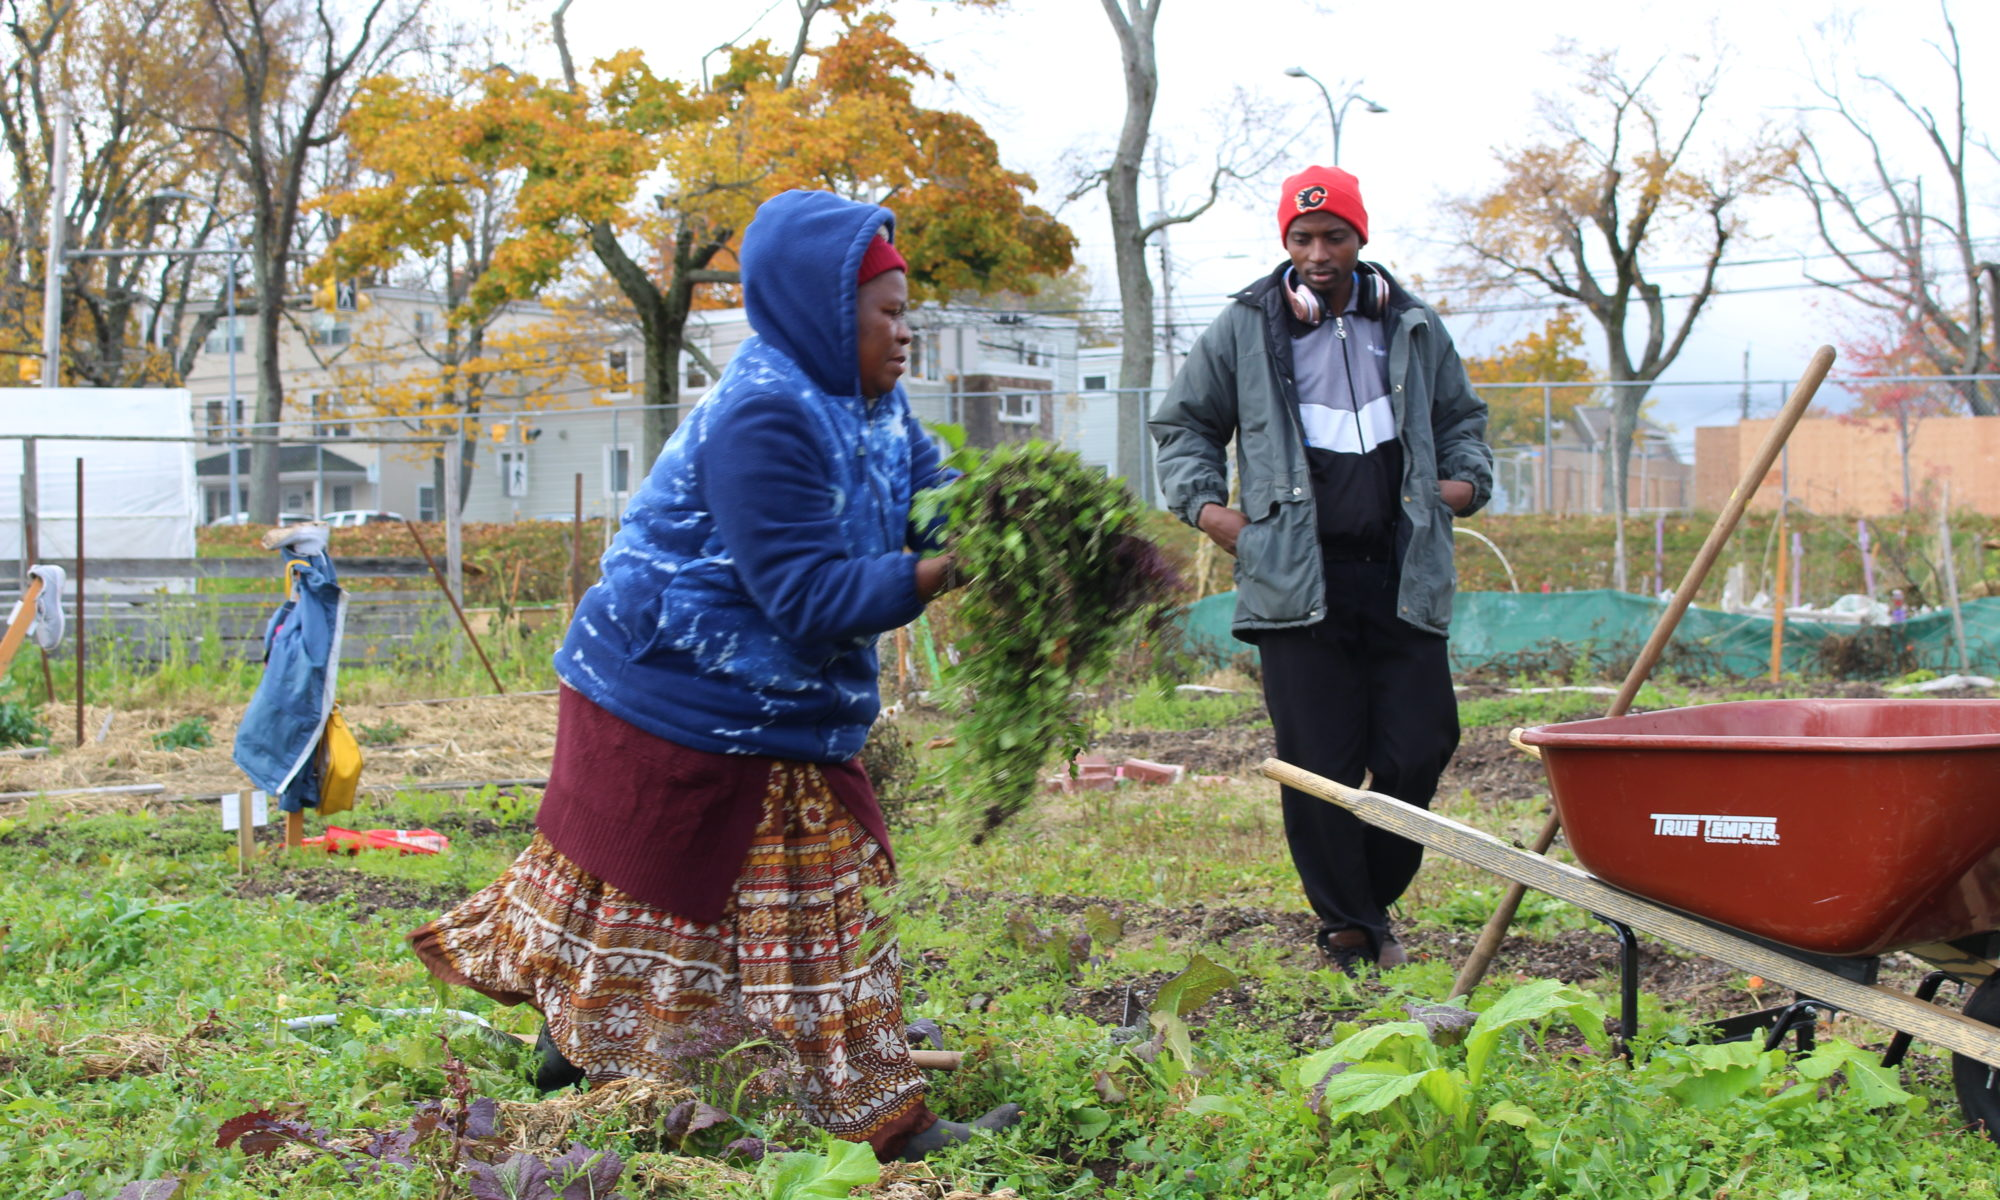 Immigrant couple tend to garden